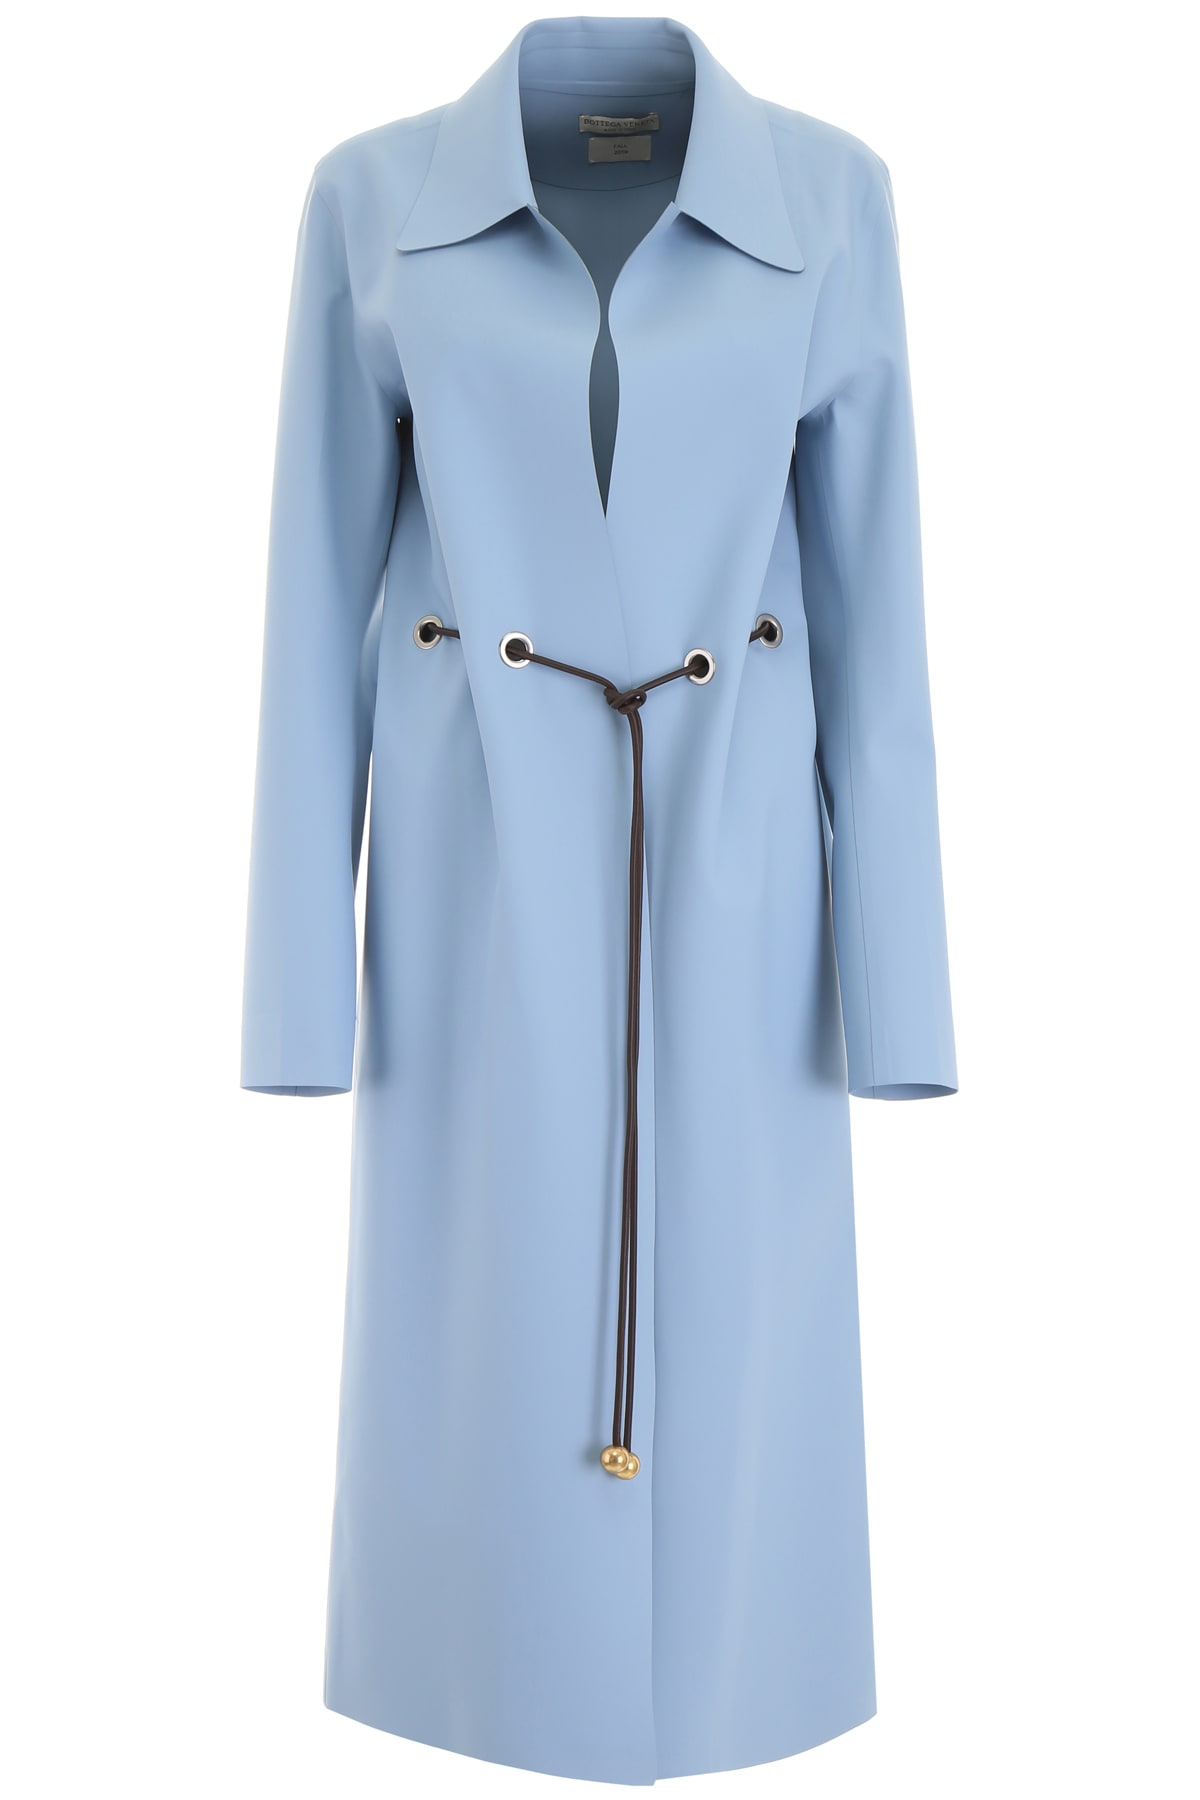 Bottega Veneta Rubber Trench Coat